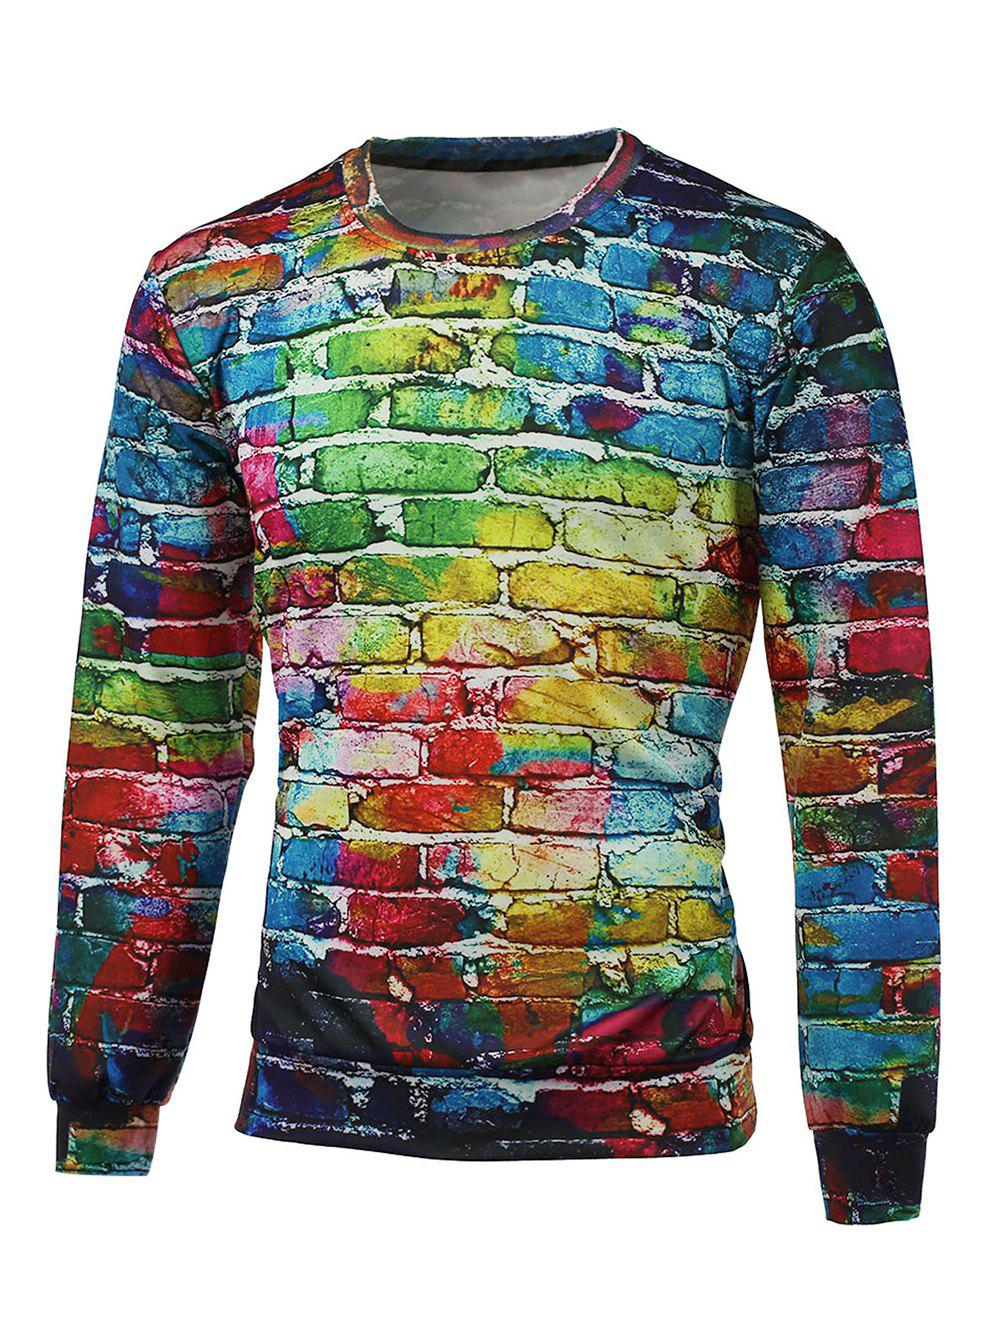 Crew Neck 3D Brick Wall Print Pullover Graphic Sweatshirts - COLORMIX S